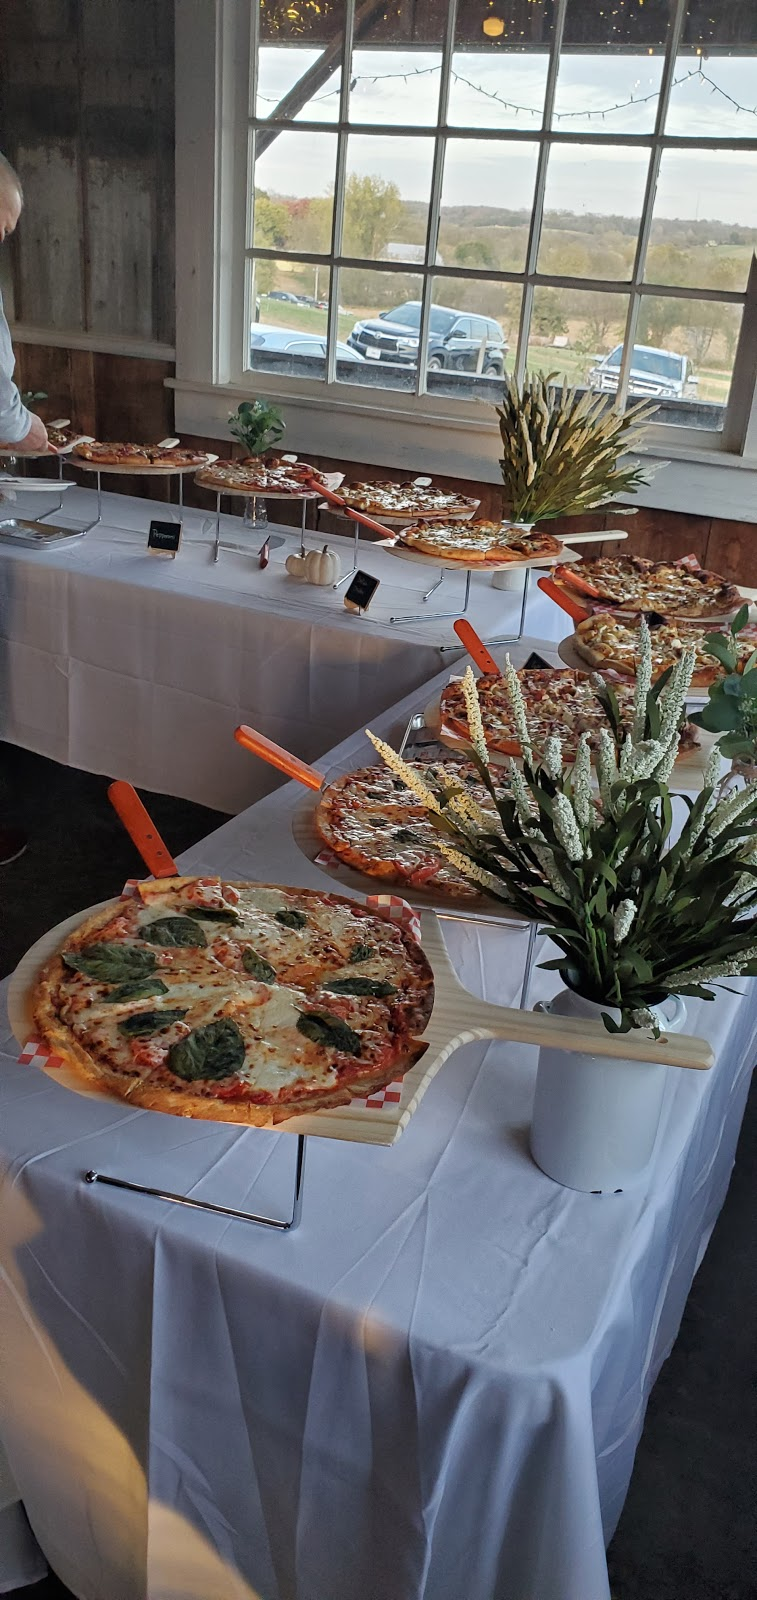 The 640 Pizza and Pints | restaurant | 710 Thomas St, Weston, MO 64098, USA | 8163864130 OR +1 816-386-4130